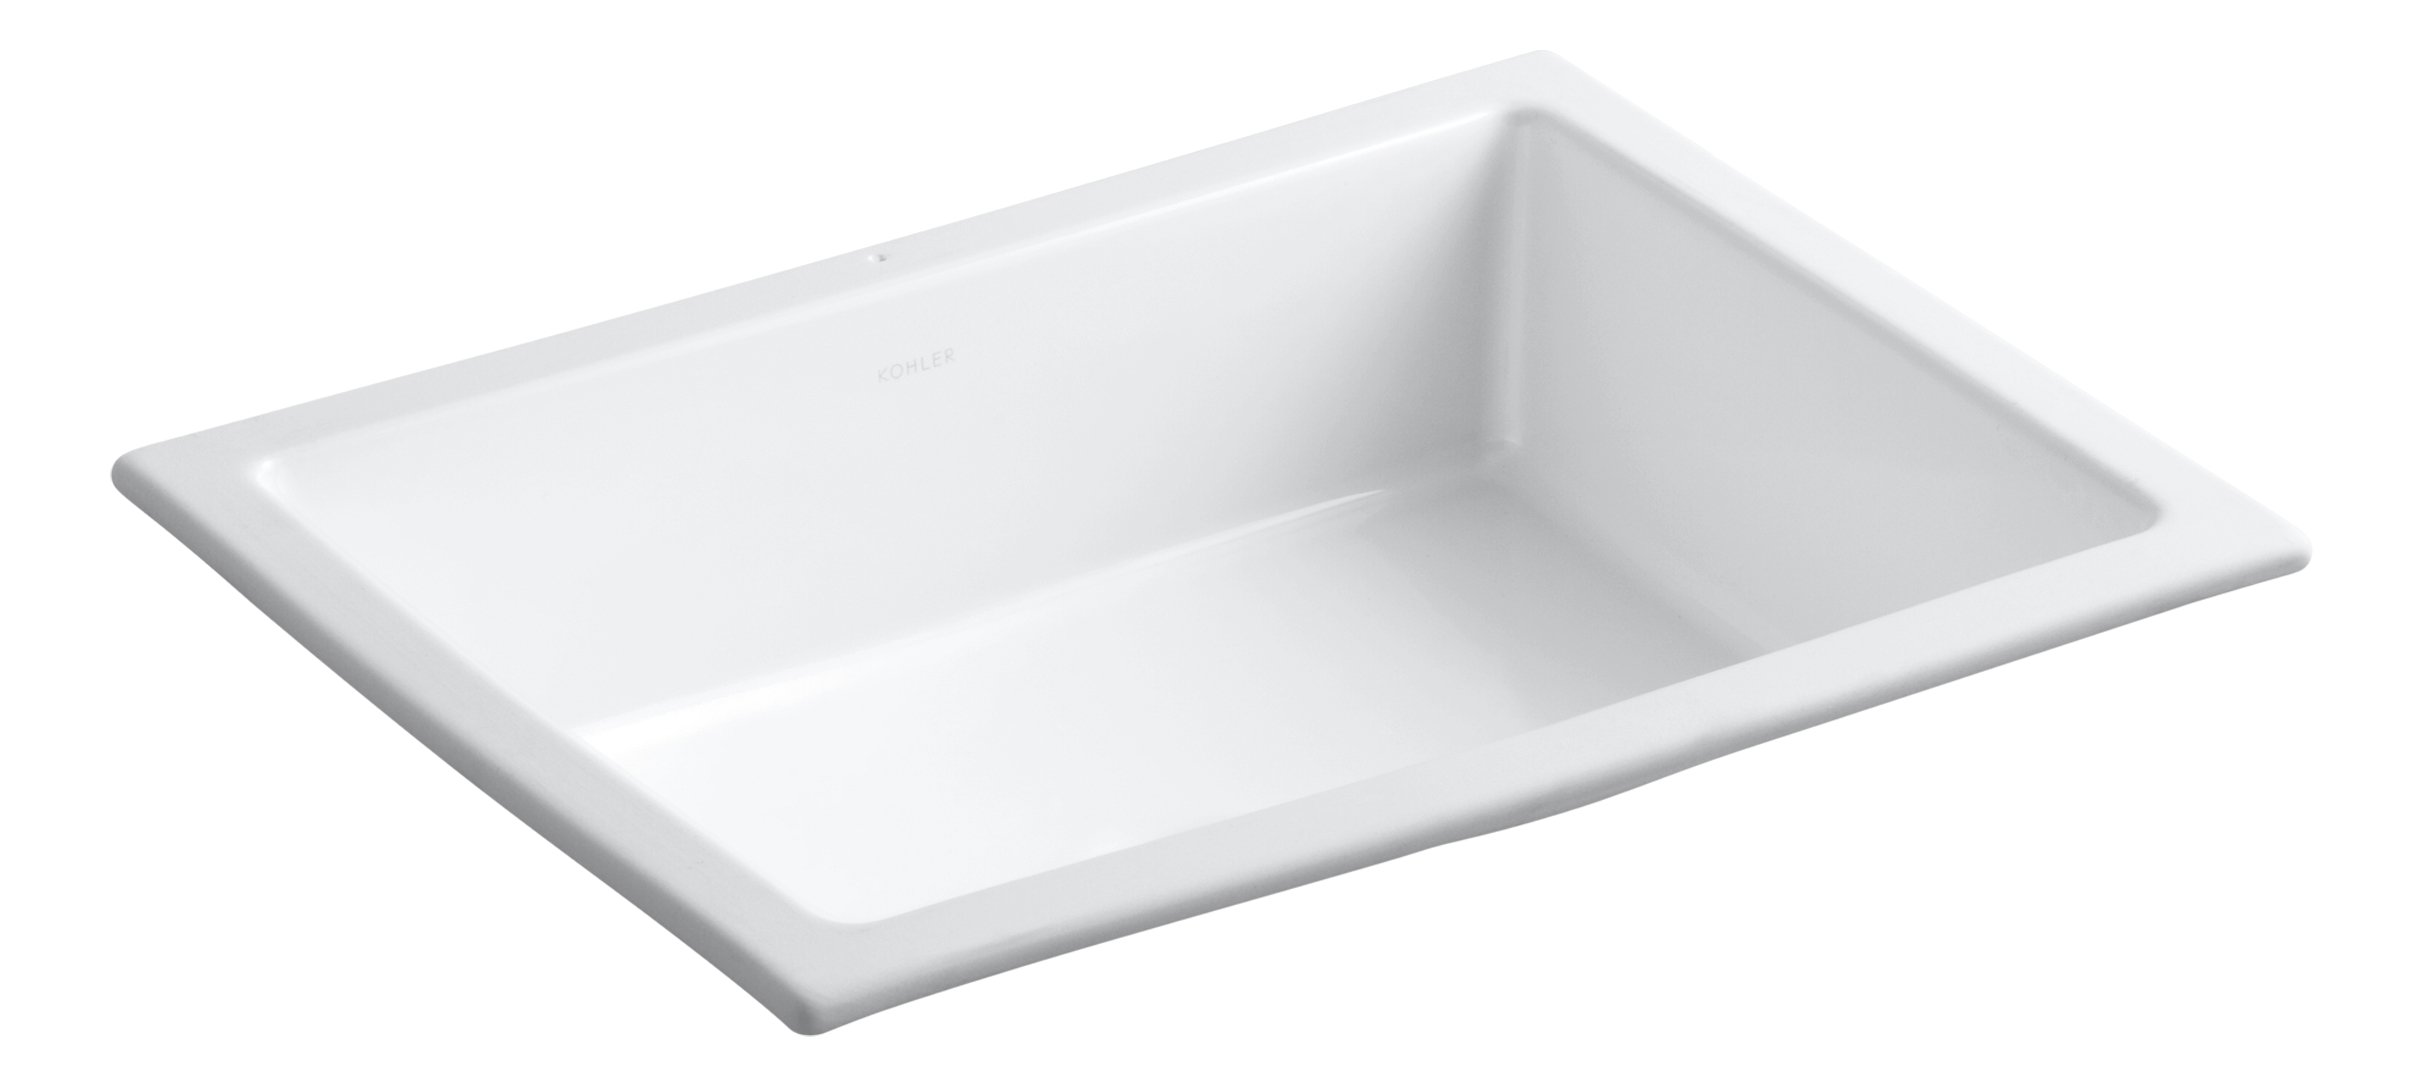 KOHLER K-2882-0 Verticyl Rectangle Undercounter Bathroom Sink, White